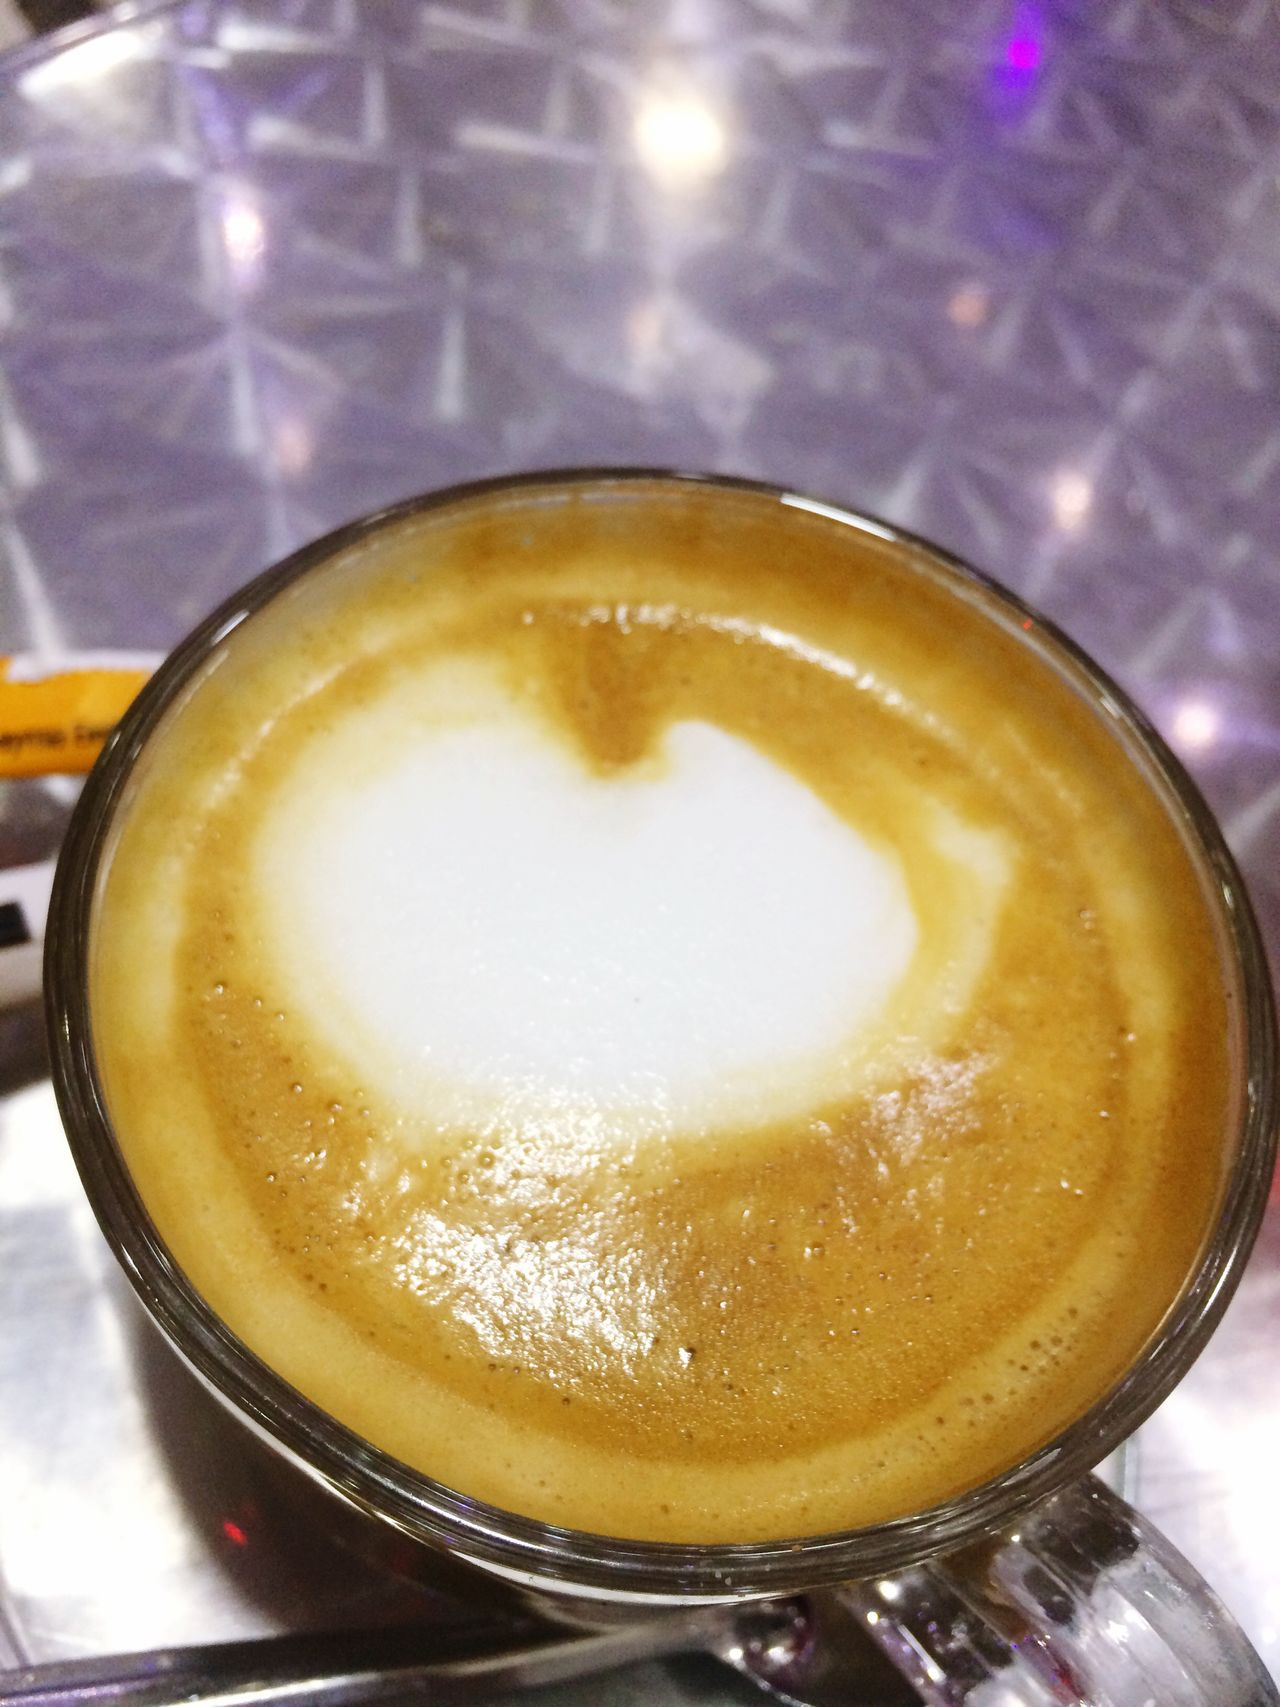 Coffee Coffee Time Coffee Cup ☕️☕️ Drink Food And Drink Indoors  Refreshment Close-up Freshness No People Frothy Drink Froth Froth Art Day Photography Photooftheday Photo Photographer Photoshoot PhonePhotography Photography In Motion Coffee Break Coffee - Drink Coffee ☕ Coffee And Cigarettes